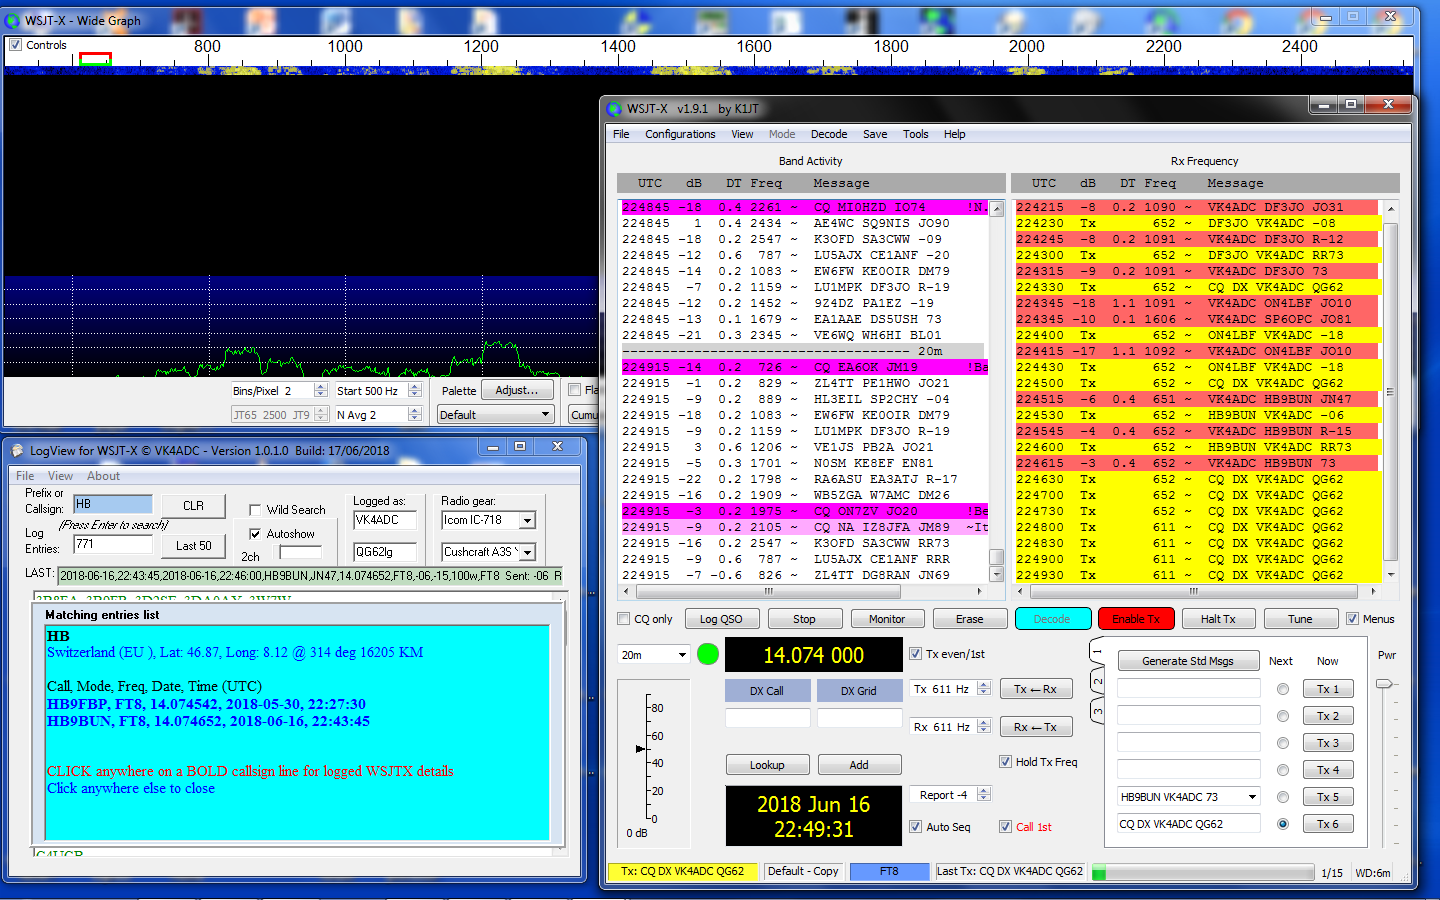 LogView for WSJT-X